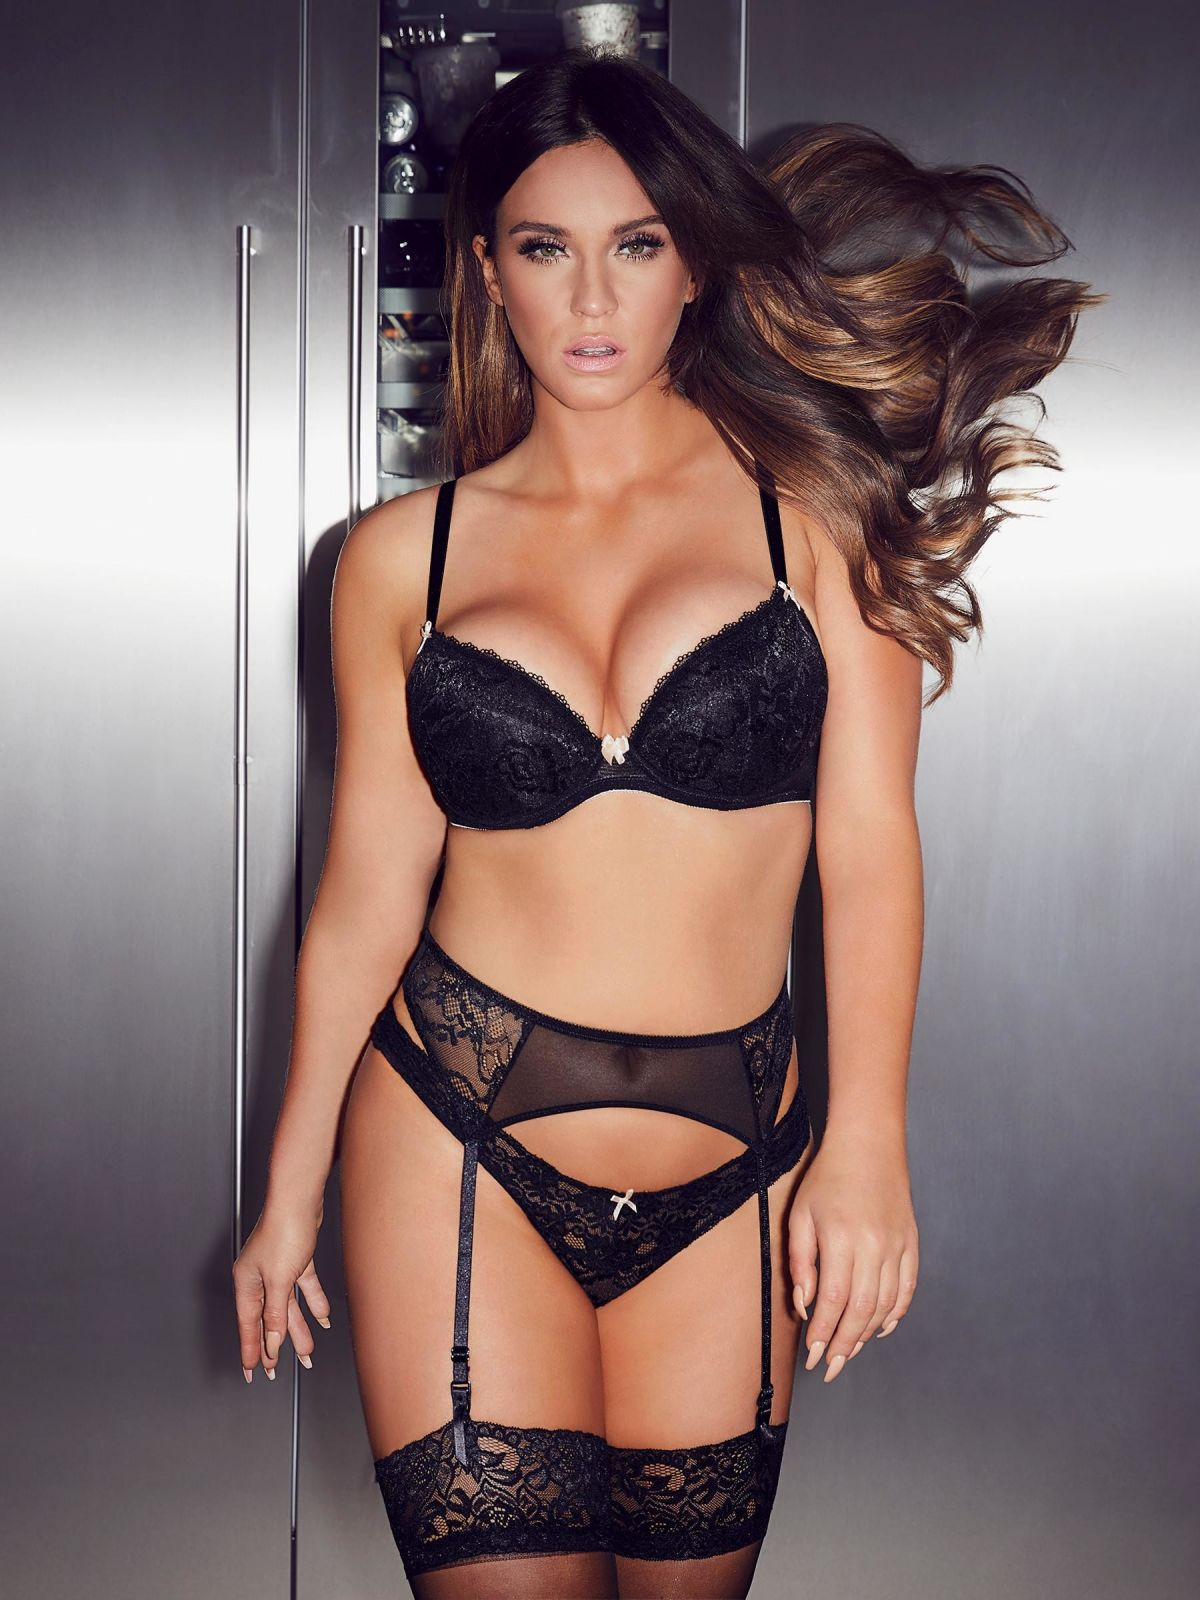 Vicky Pattison Busty In Lingerie As She Promotes Ann